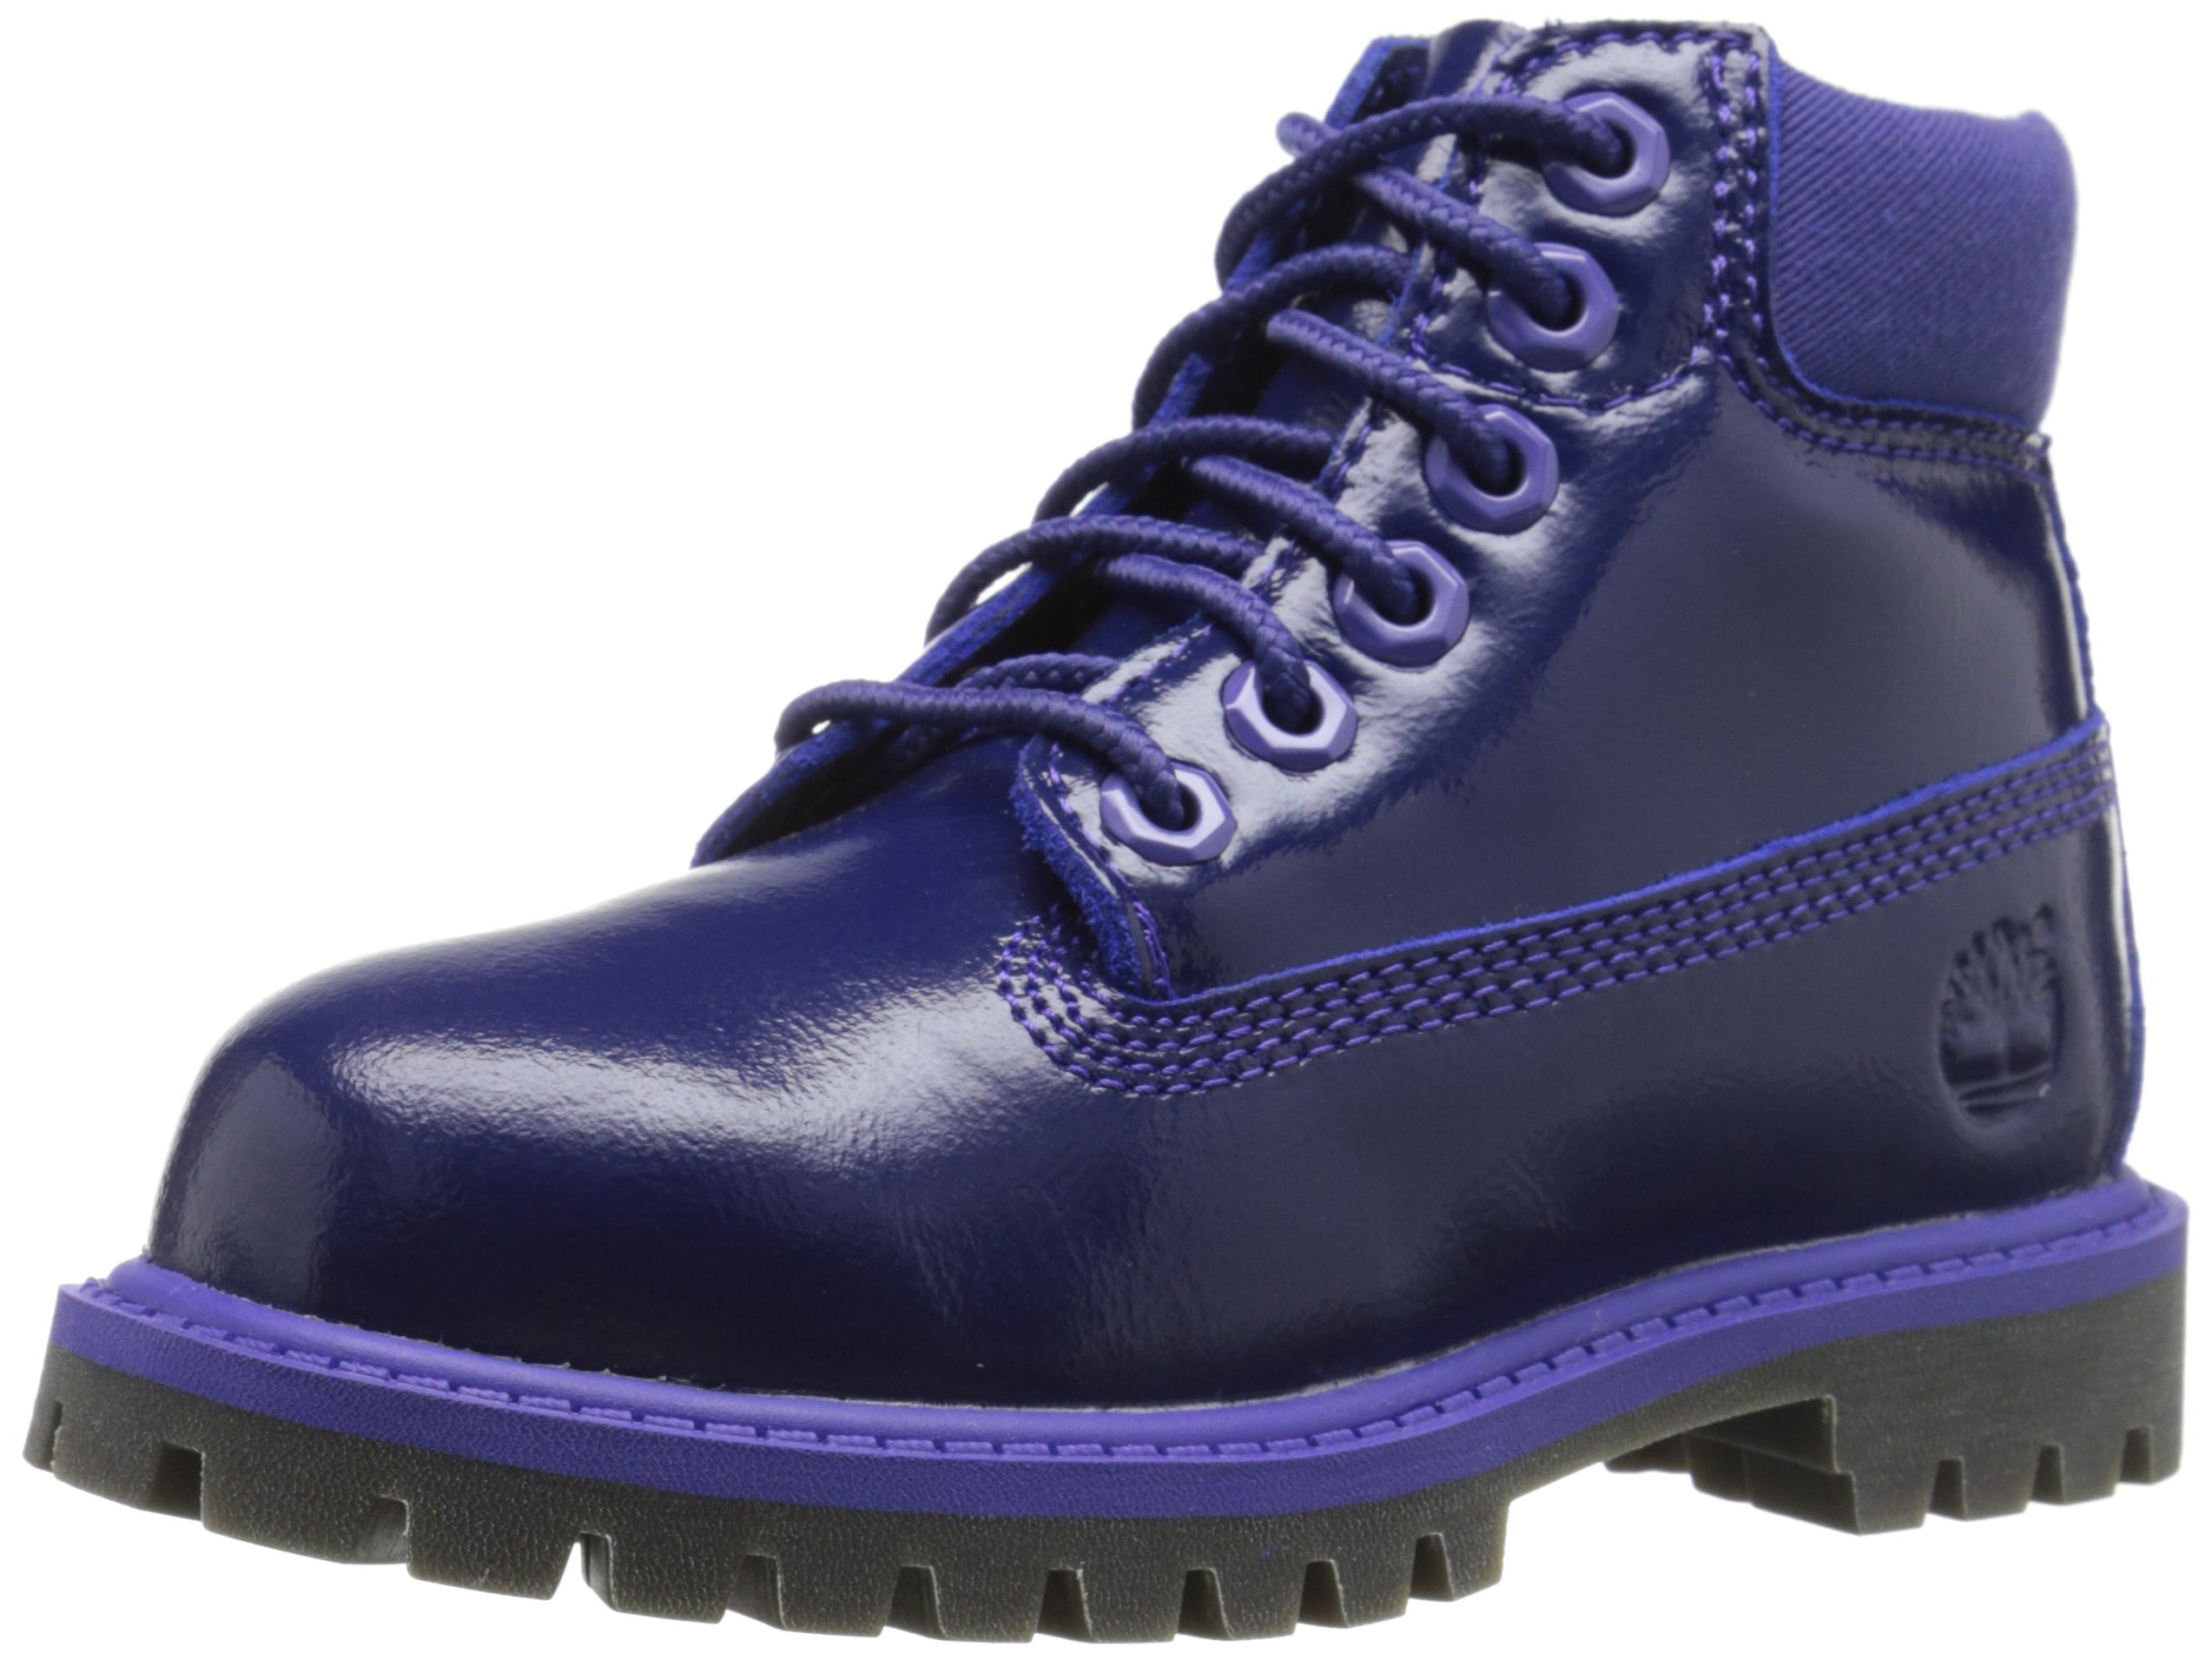 Timberland 6'' Premium Waterproof Boot, Purple Shine, 7 M US Toddler